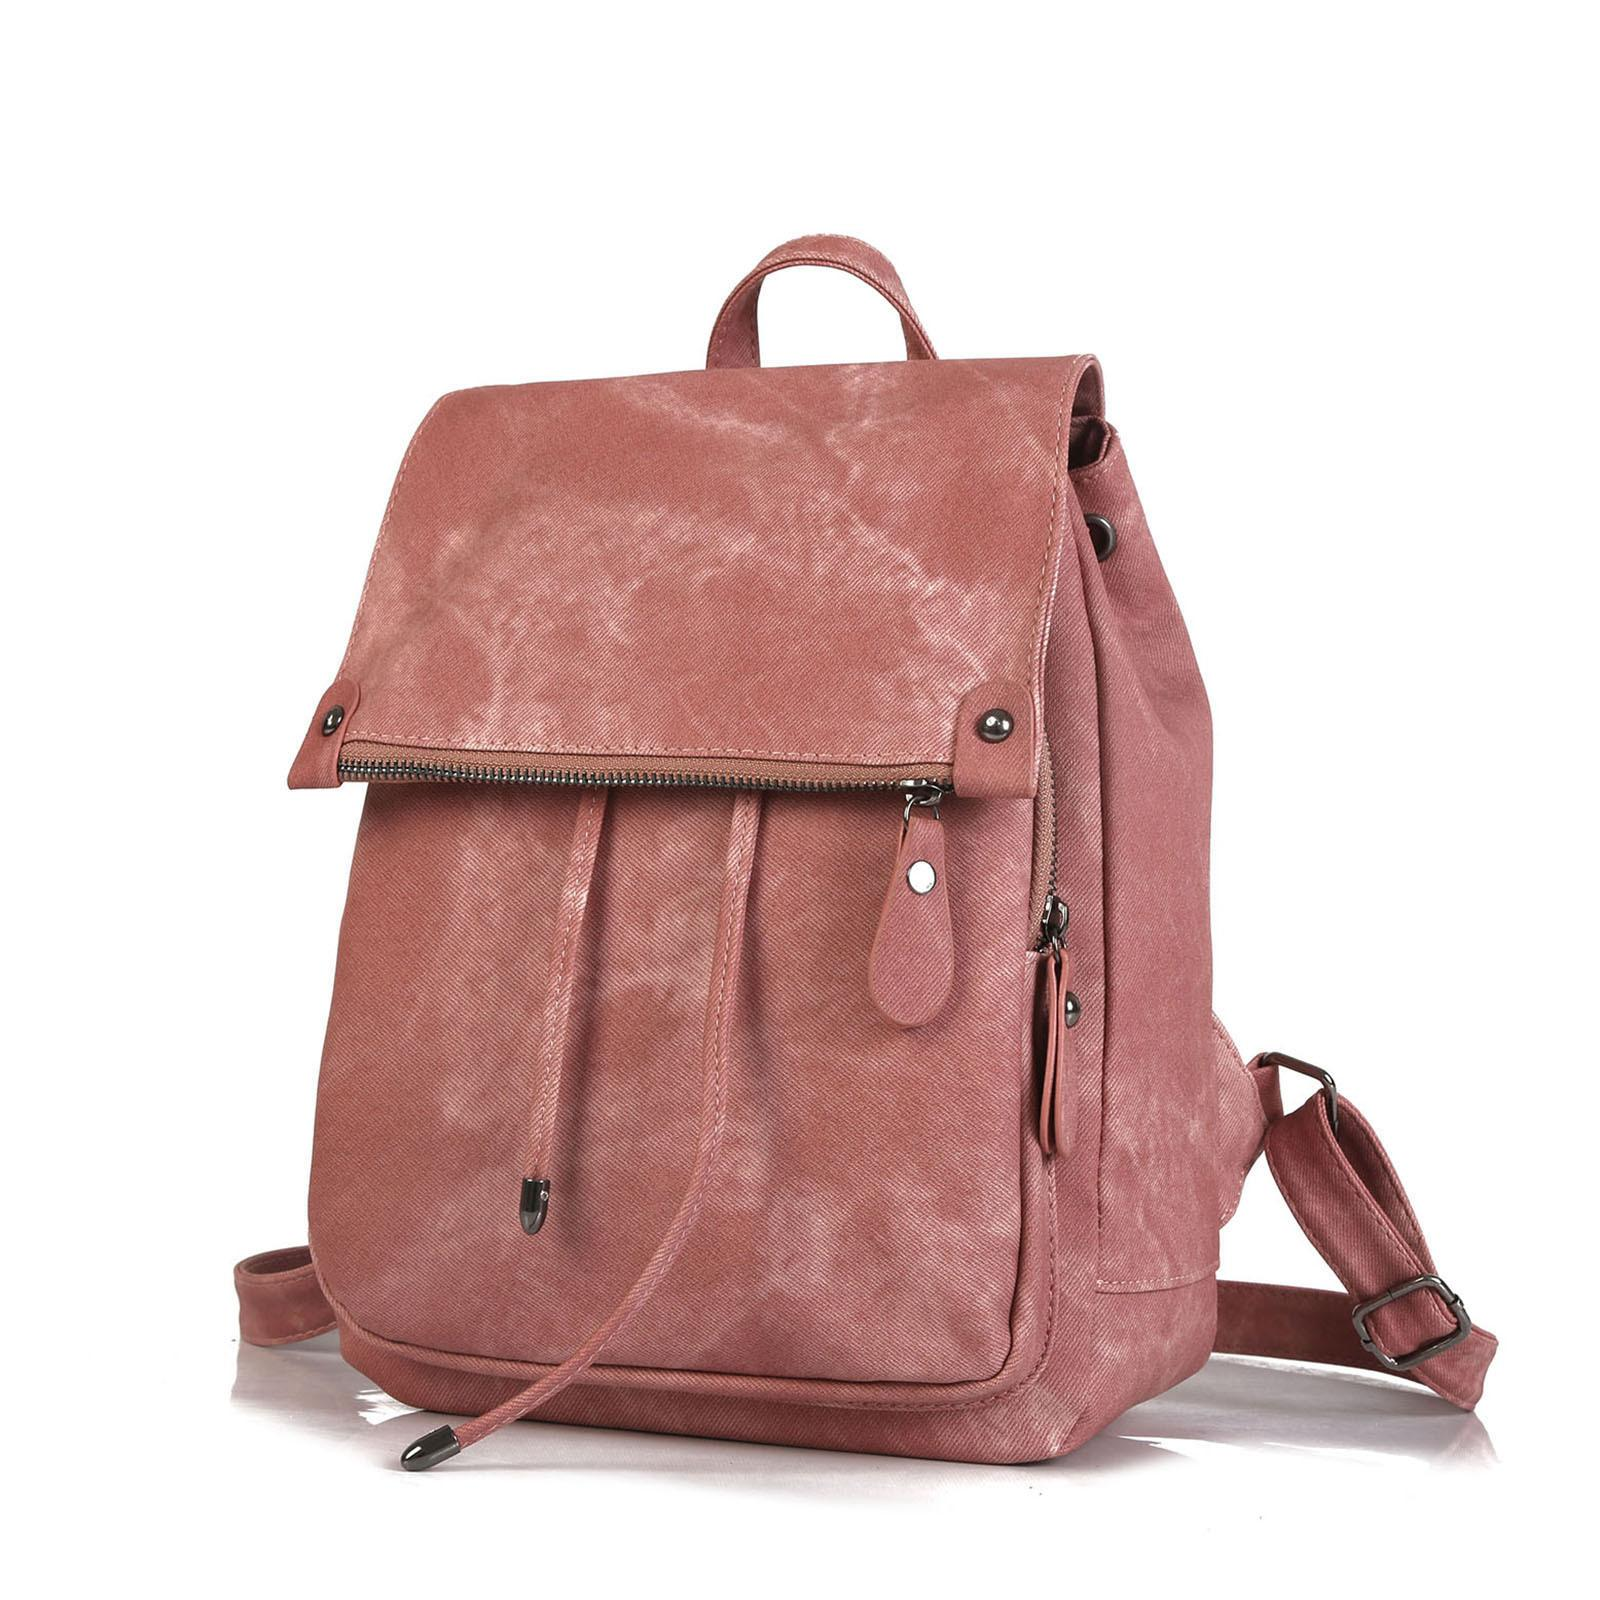 12d55a7bd5 College Style Student Backpack PU Leather Women Handbags Fashion Solid  Color Ladies Shoulder Bag Fashion Casual Rucksack School Backpacks Cool  Backpacks ...